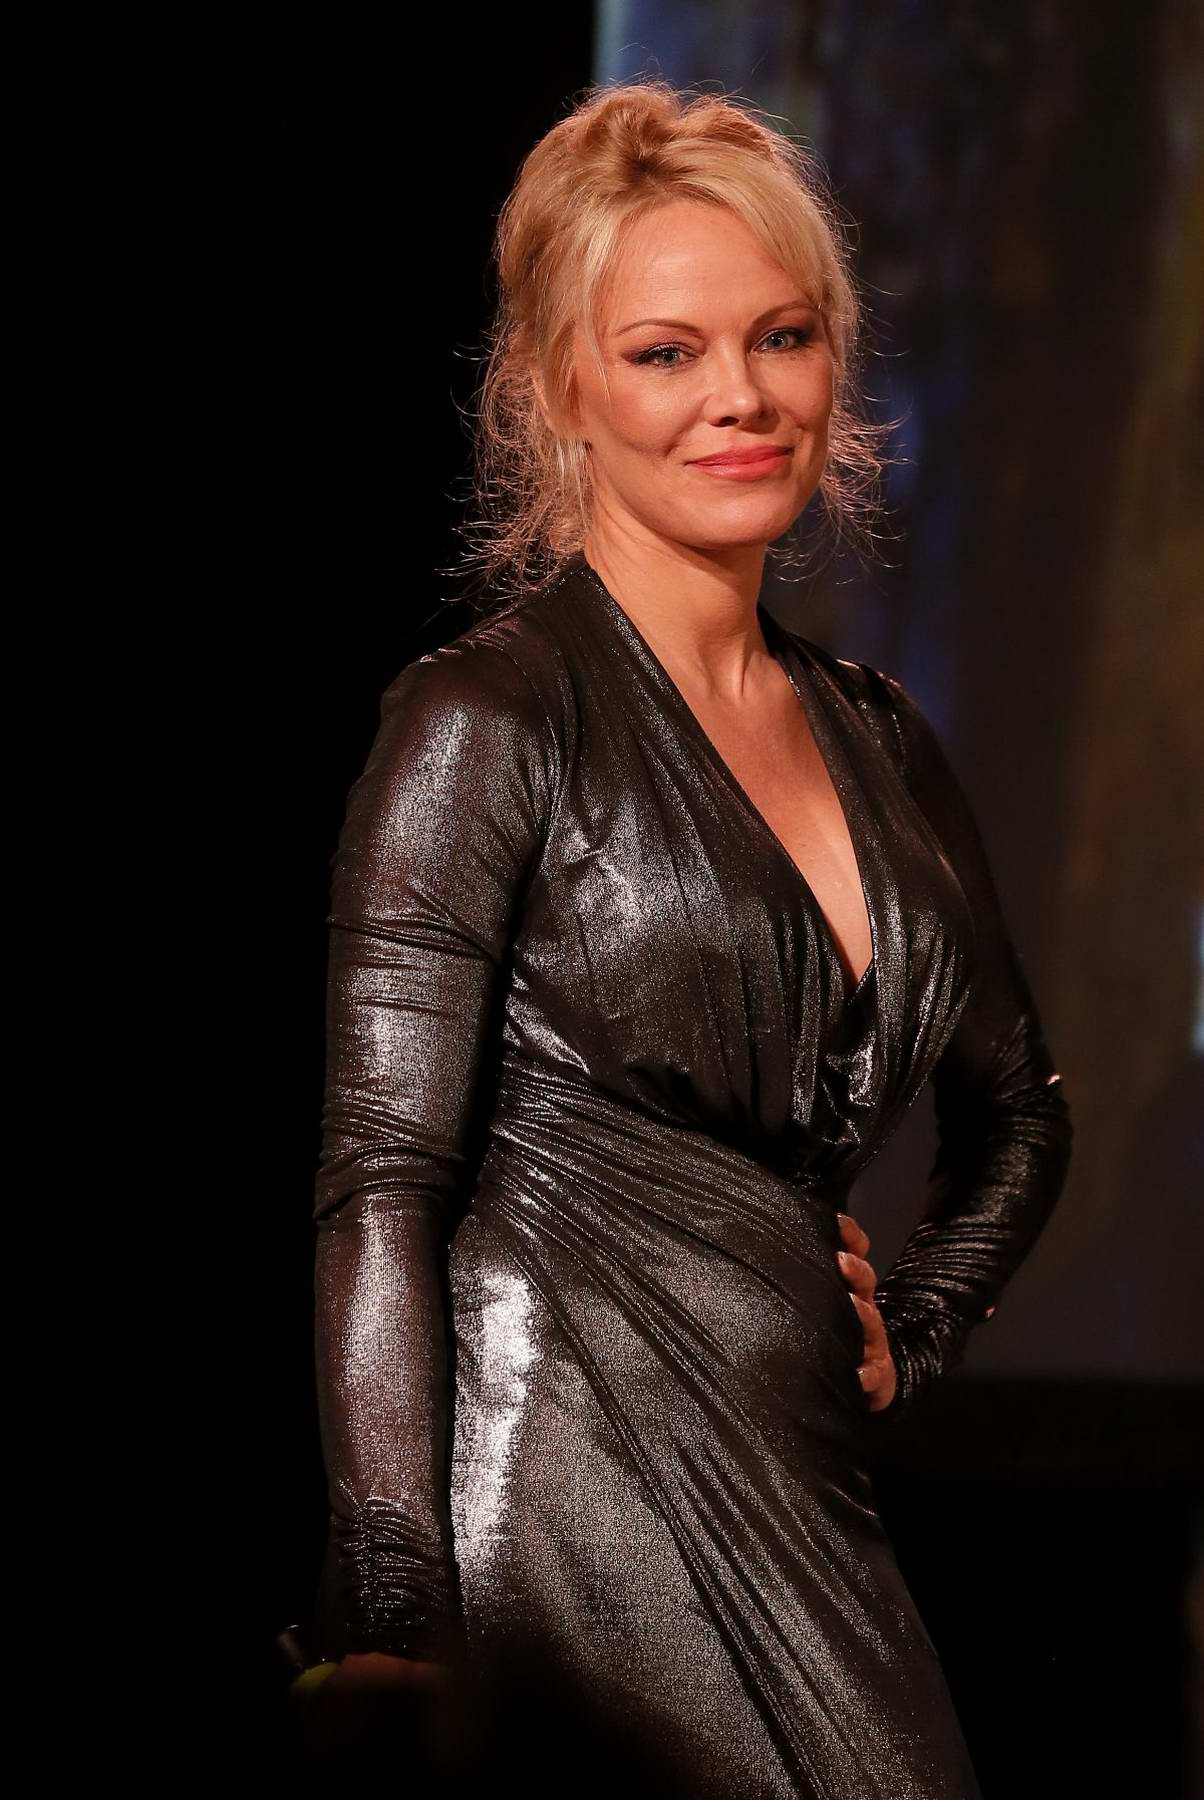 Pamela Anderson at Sea Shepard 40th Anniversary in Bordeaux, France